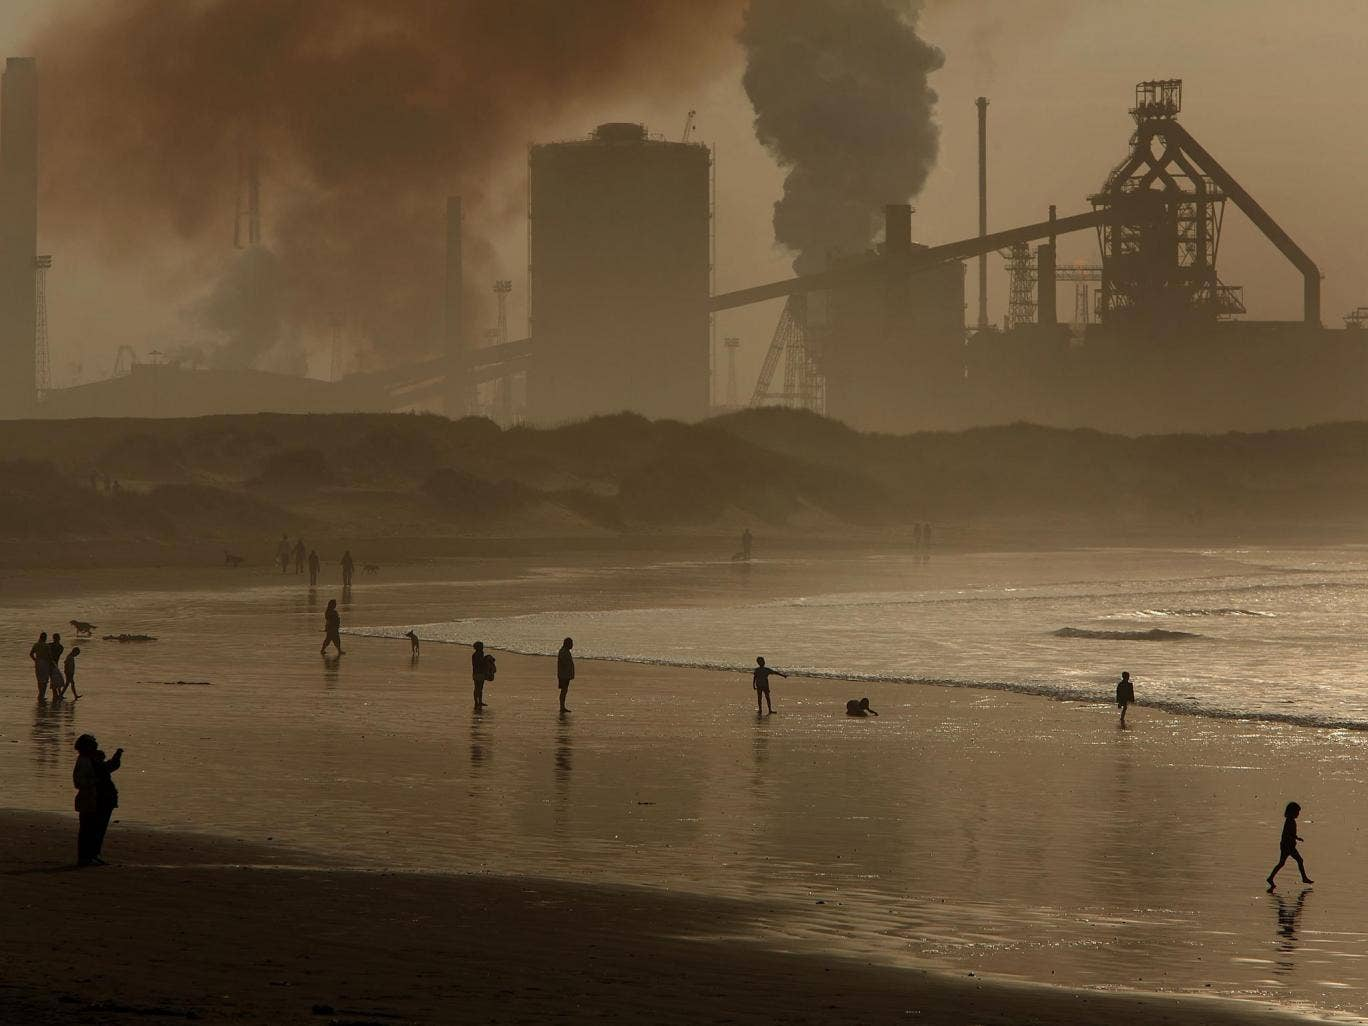 Pea soupers: locals on Redcar beach in the shadow of the Corus Steelworks in Teesside